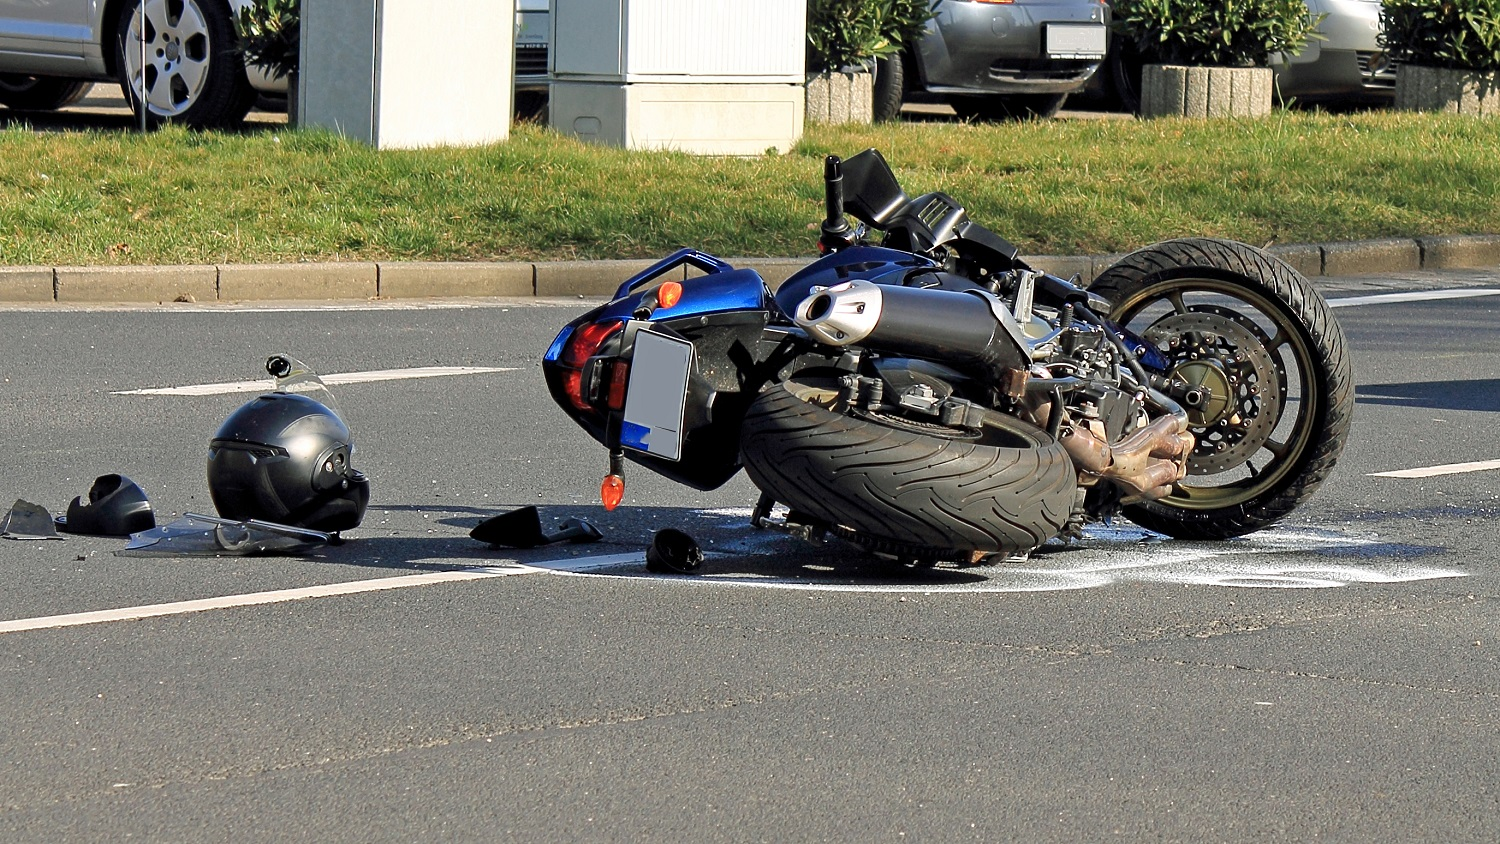 Protect Yourself in a Motorcycle Accident